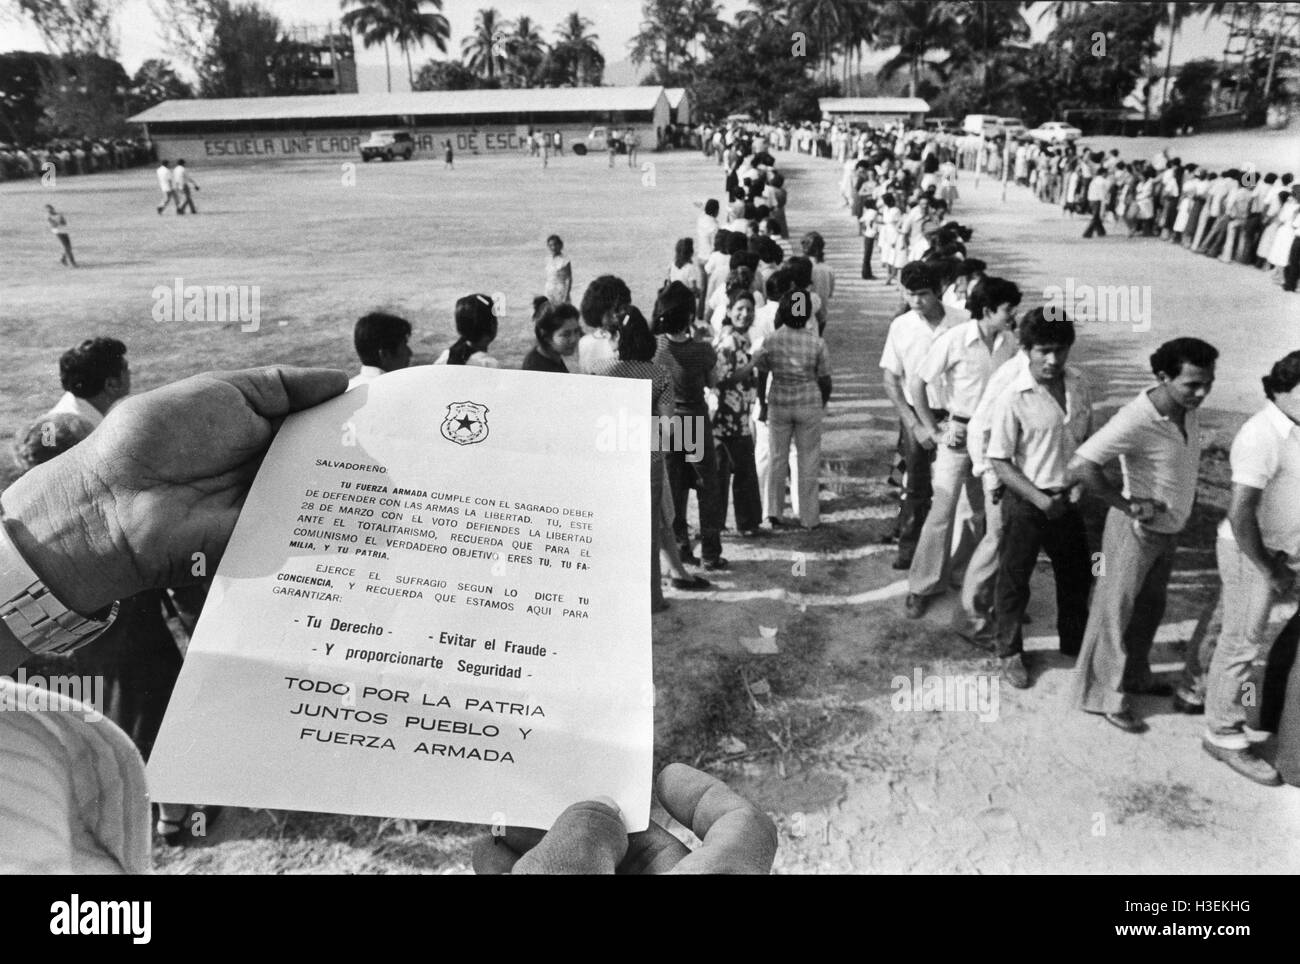 SAN SALVADOR, EL SALVADOR, 28th March 1982: Voter holds an army propaganda leaflet handed out to people wueuing - Stock Image